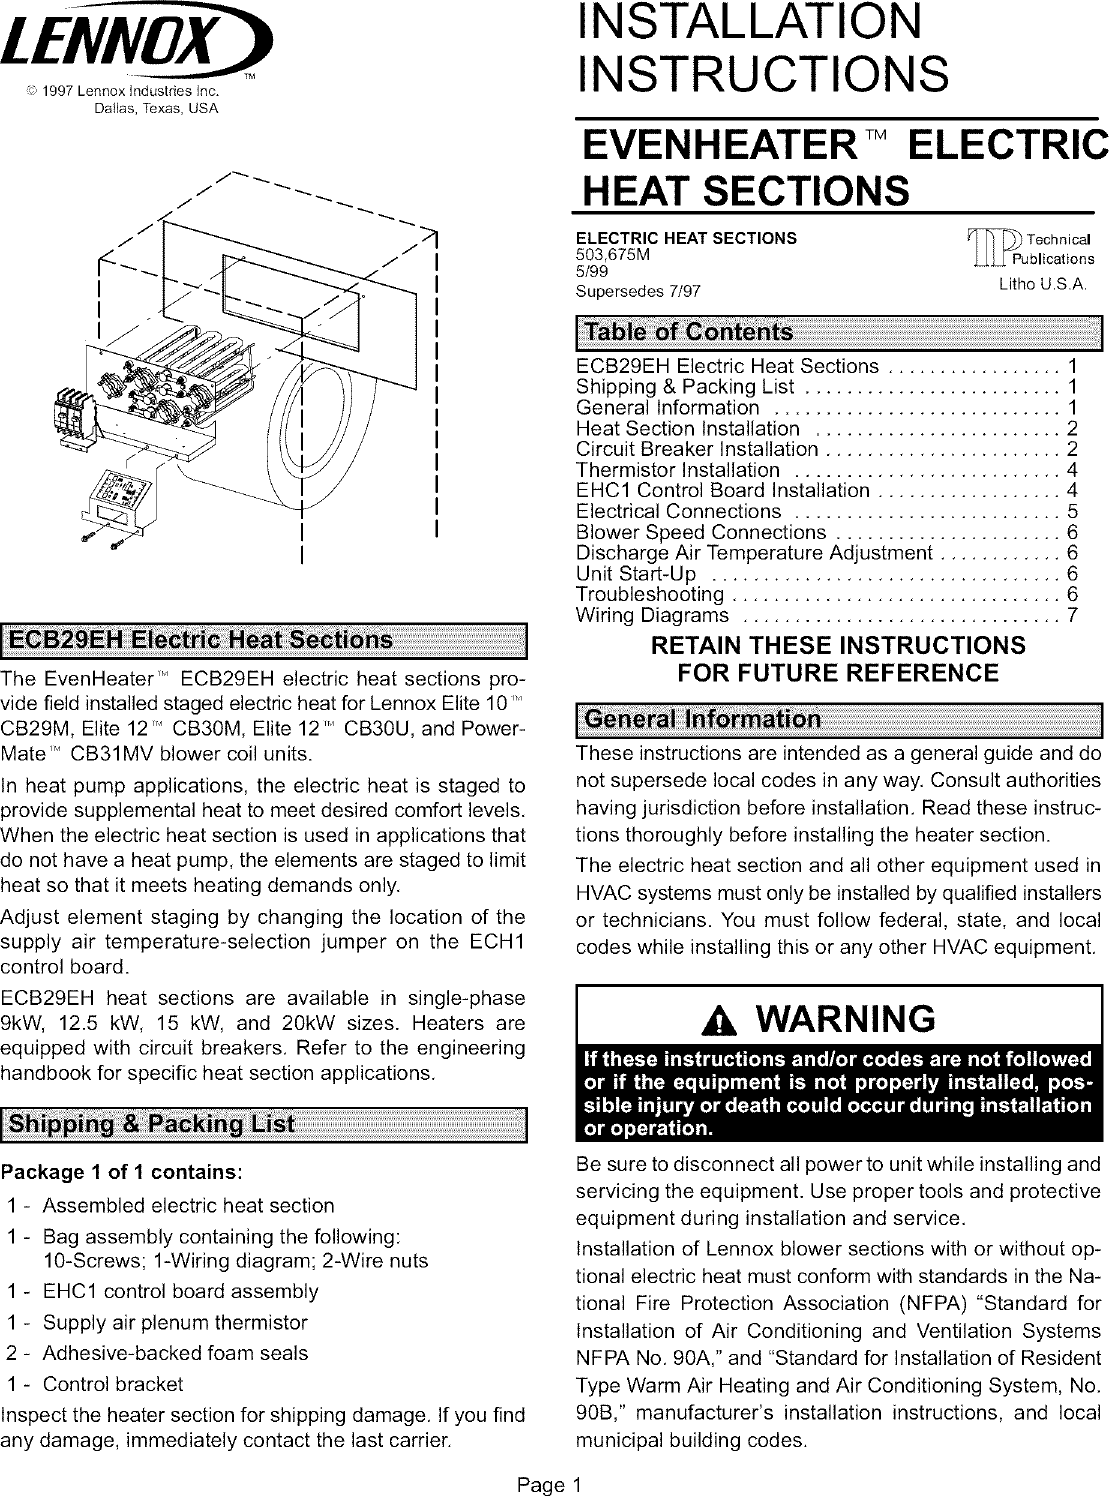 Lennox Air Handler Auxiliary Heater Kit Manual L0805584 Electrical Wiring Handbook Page 1 Of 12